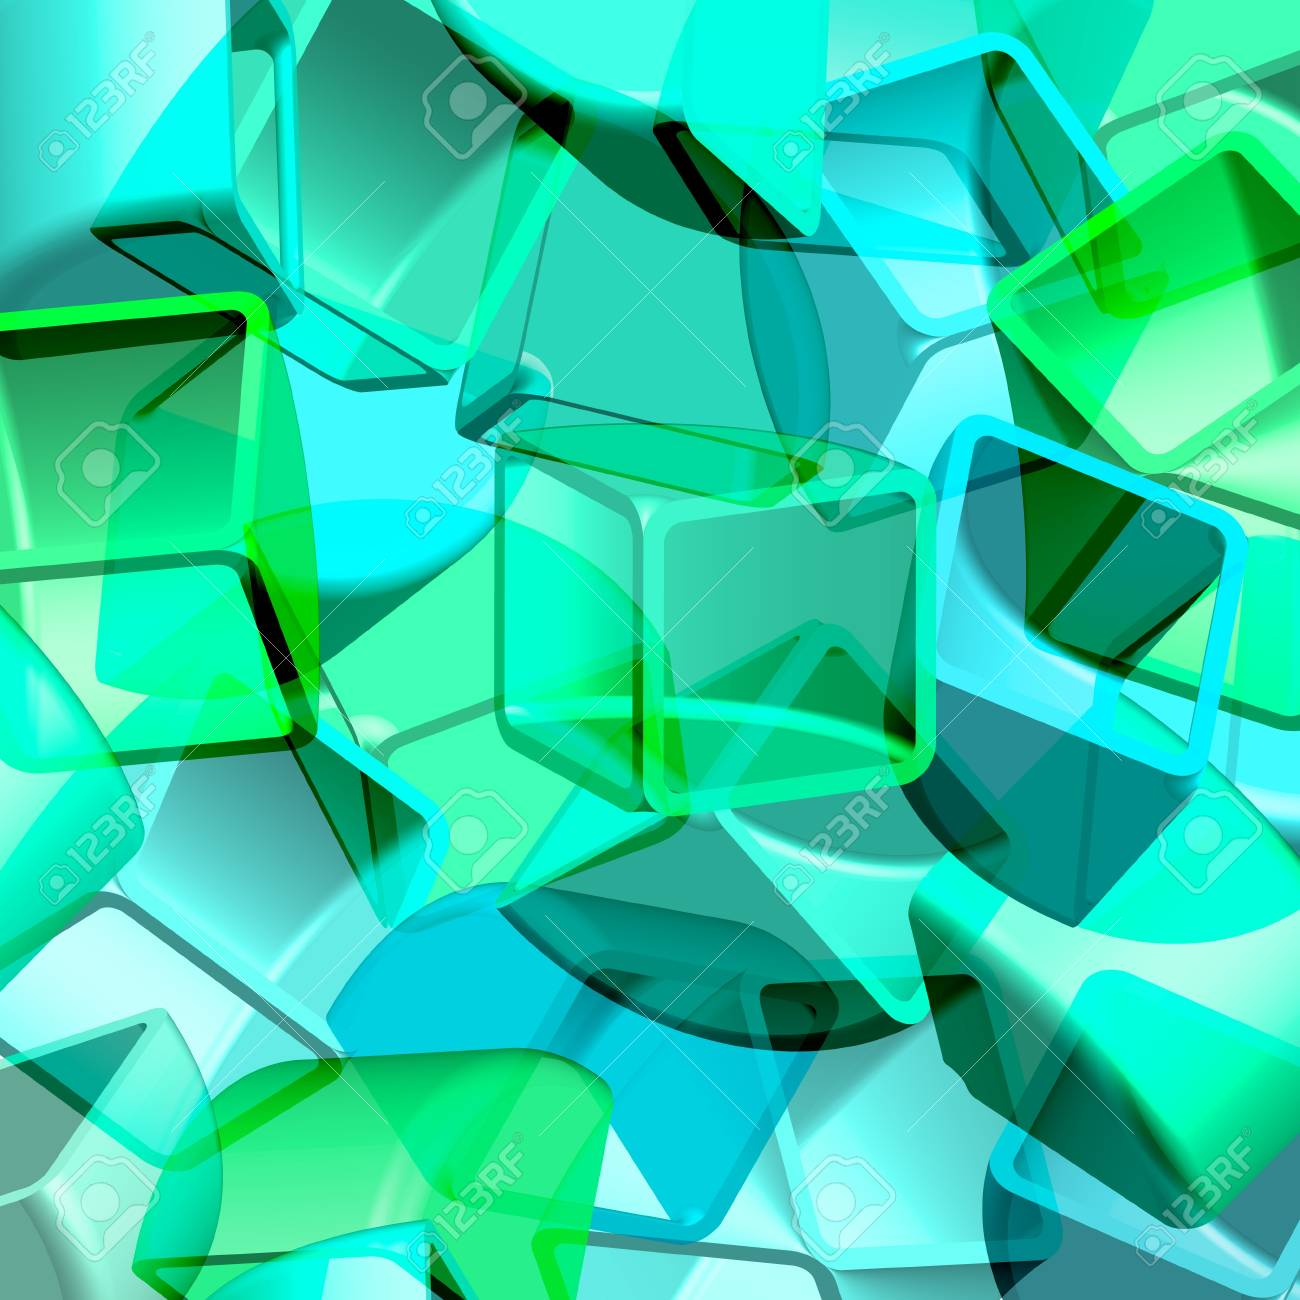 Abstract 3d illustration of cubes - 14580732